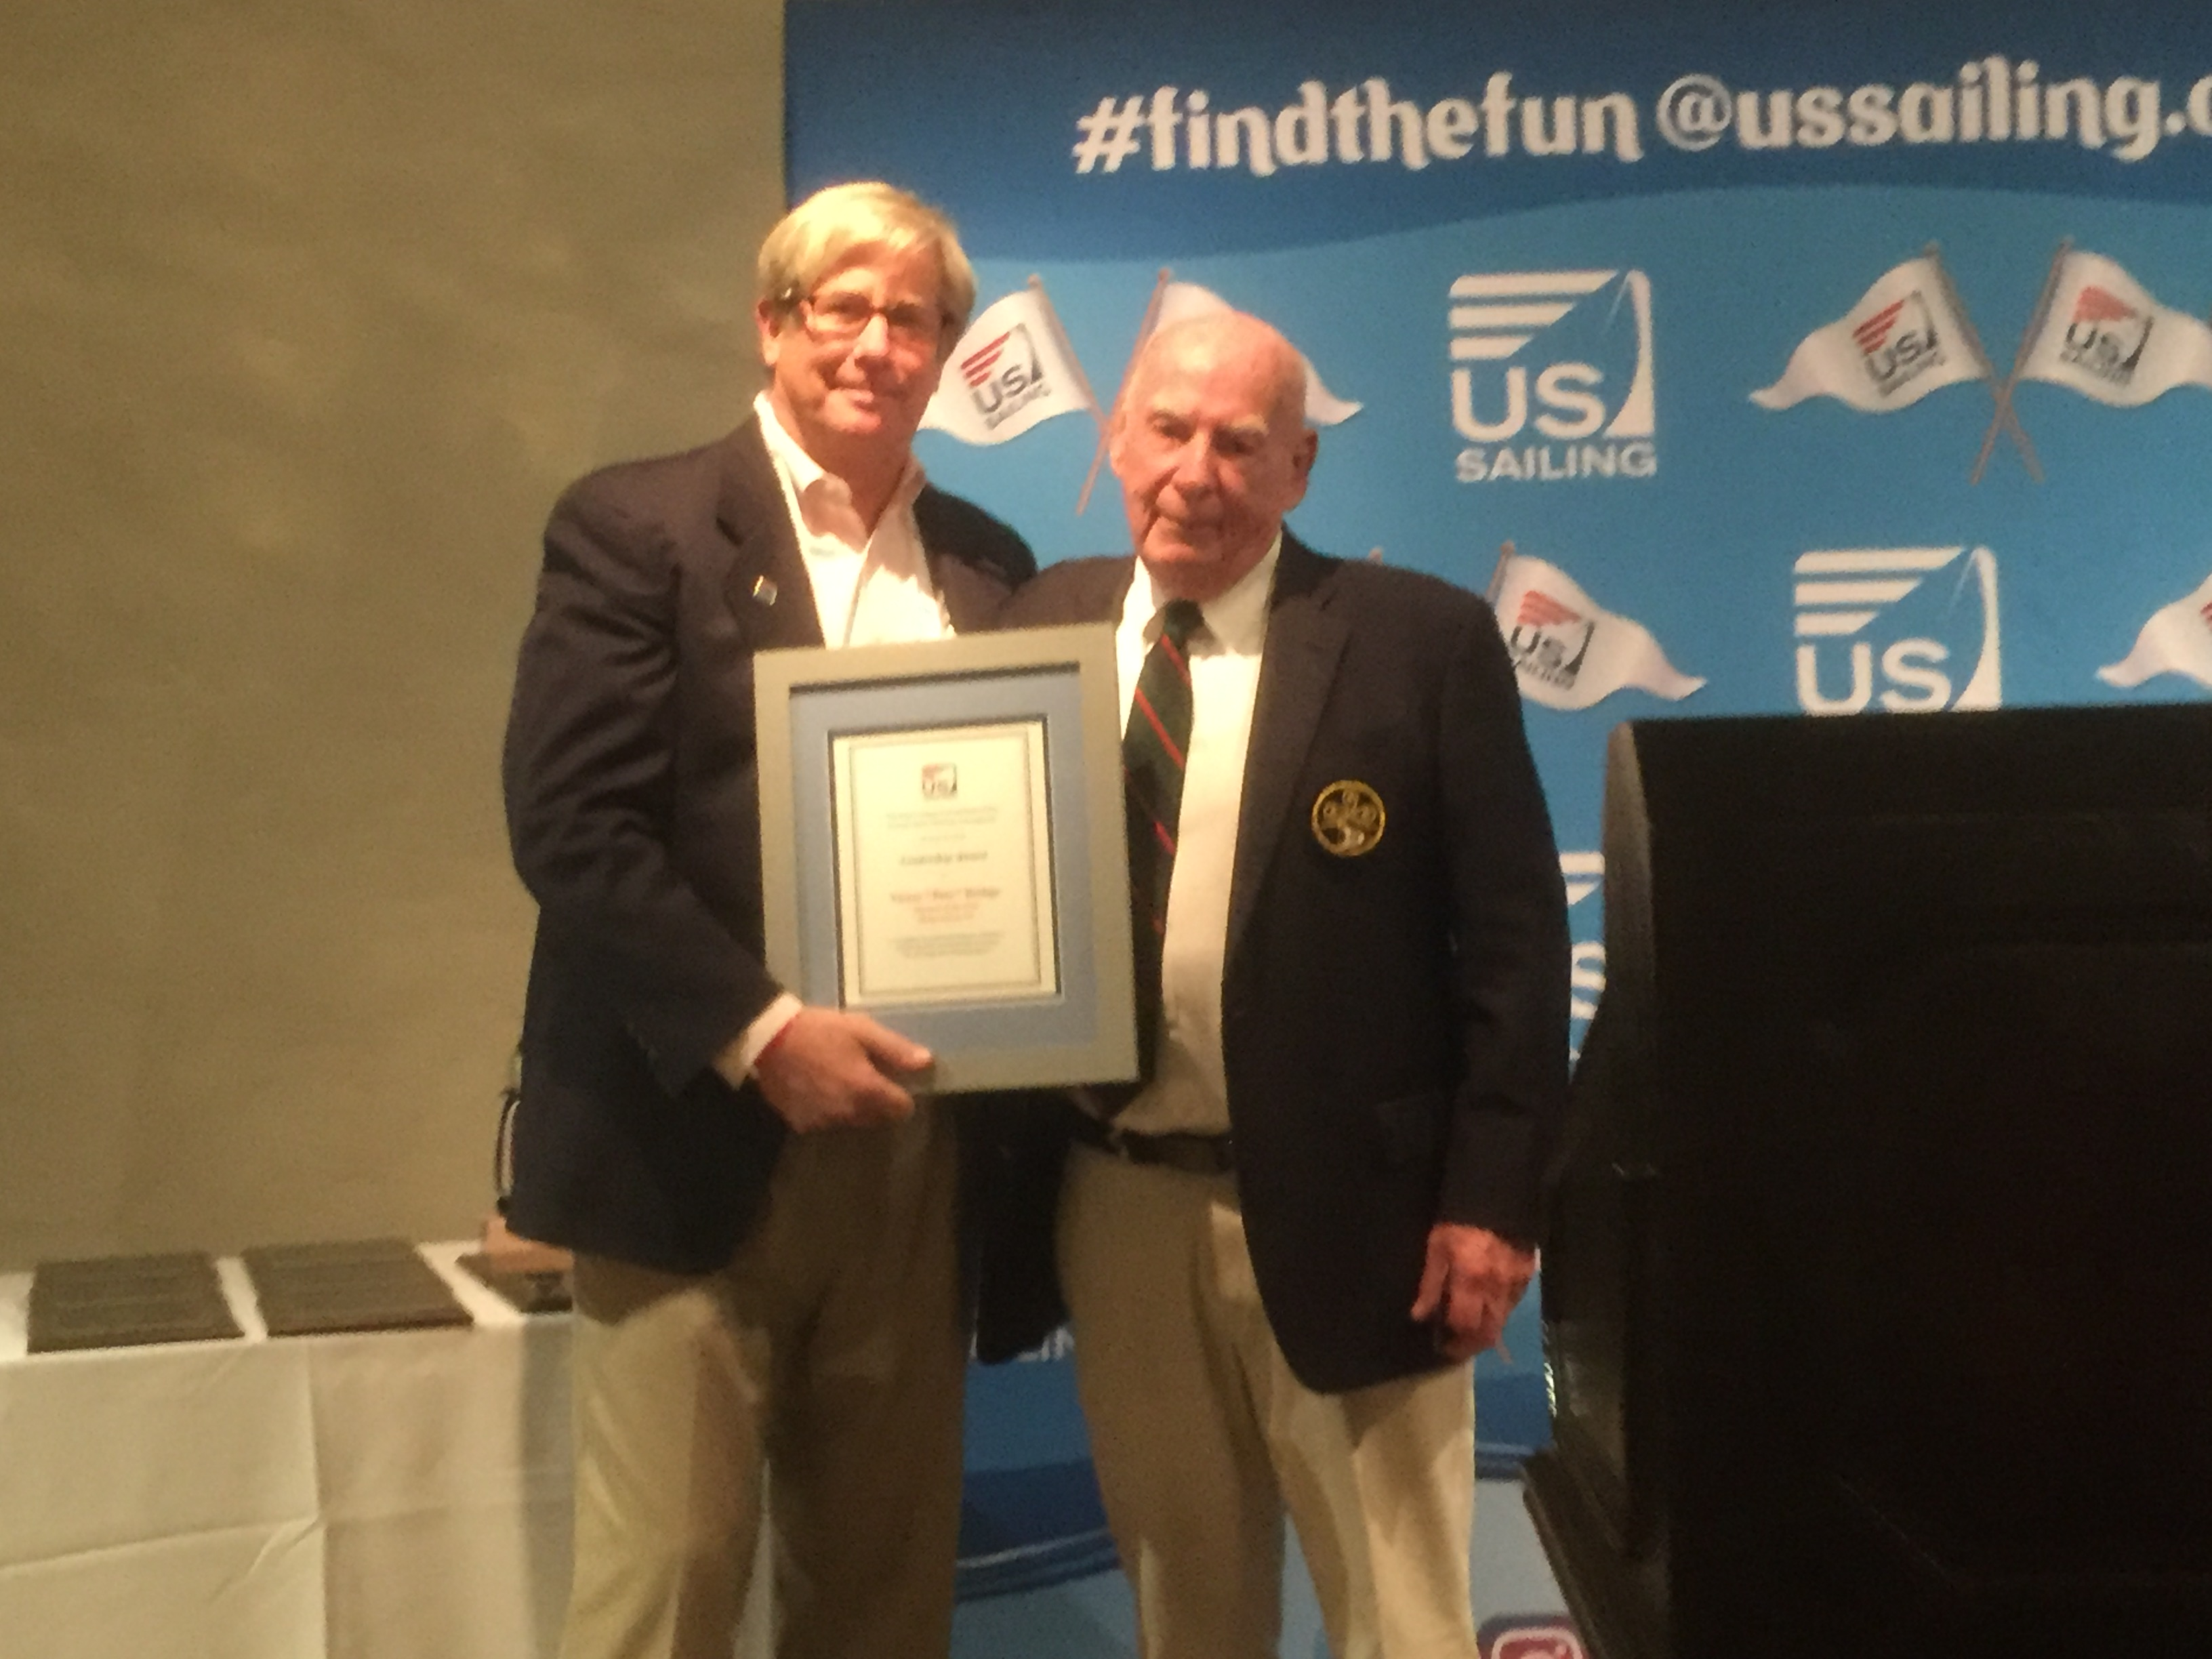 Pete Bethge (R) receiving the National One-Design Leadership award from US Sailing VP Rich Jepsen